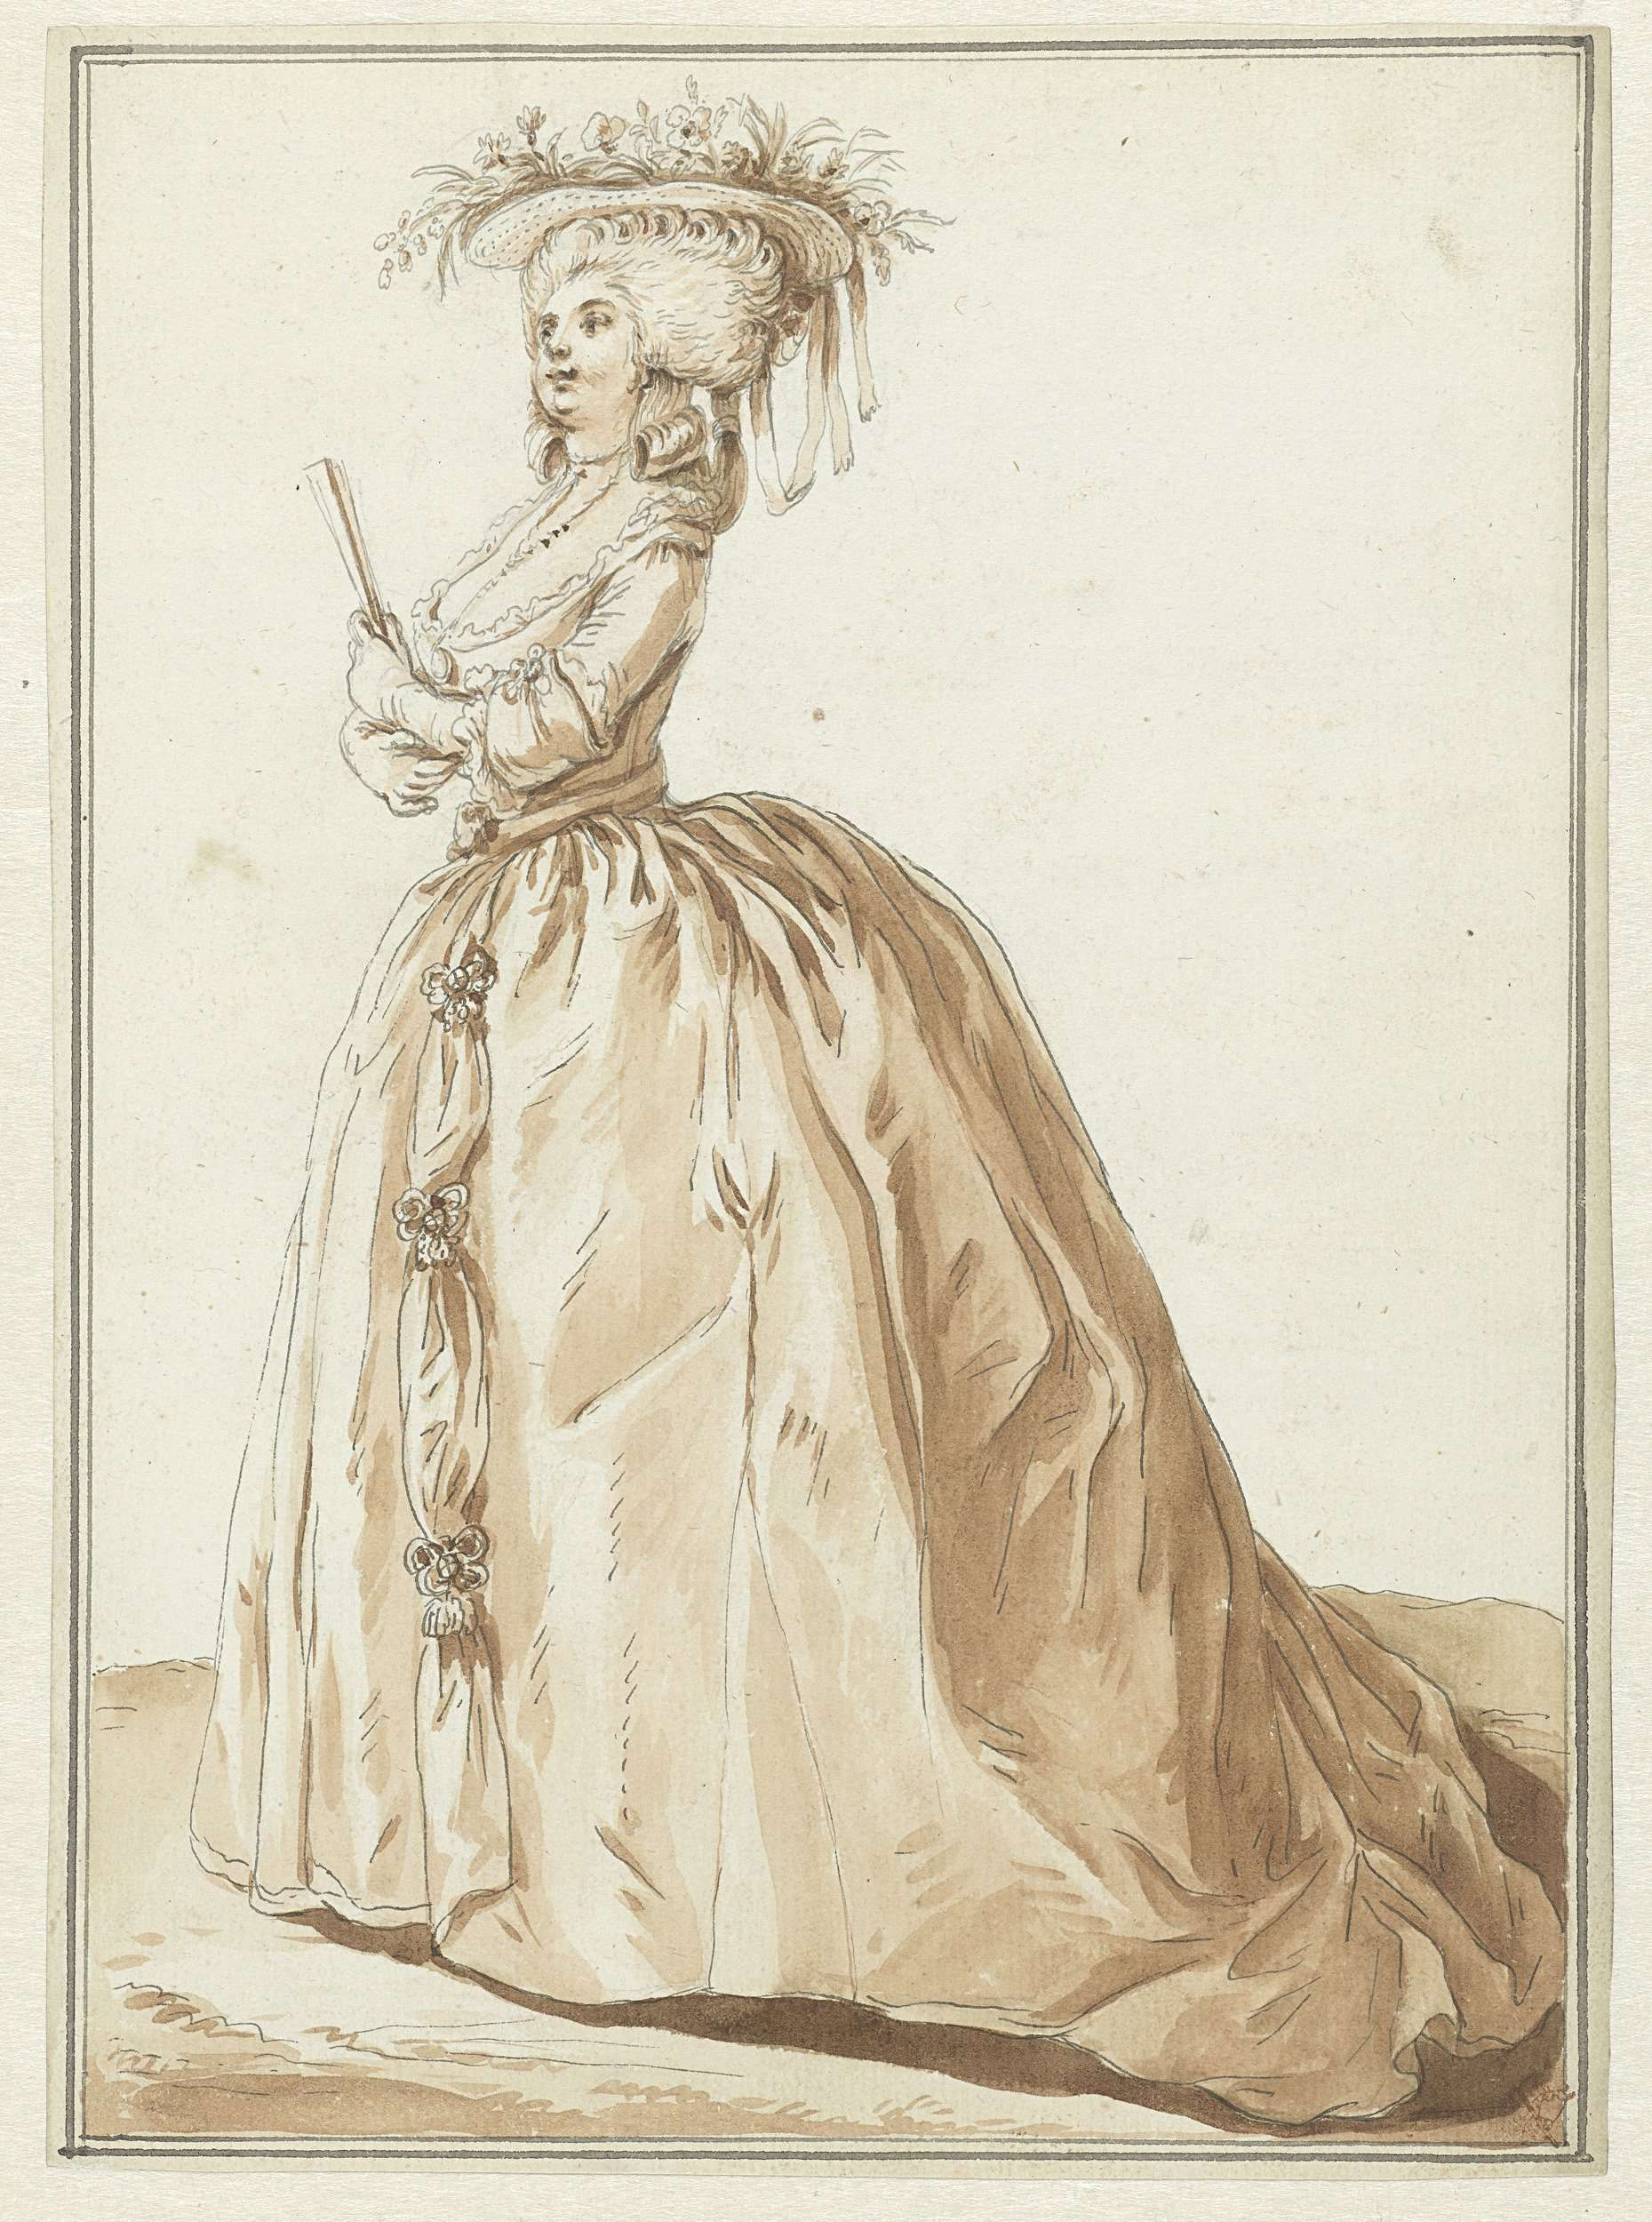 Staande dame met waaier, Pierre Thomas Le Clerc, Claude-Nicolas Desrais, in or before 1784